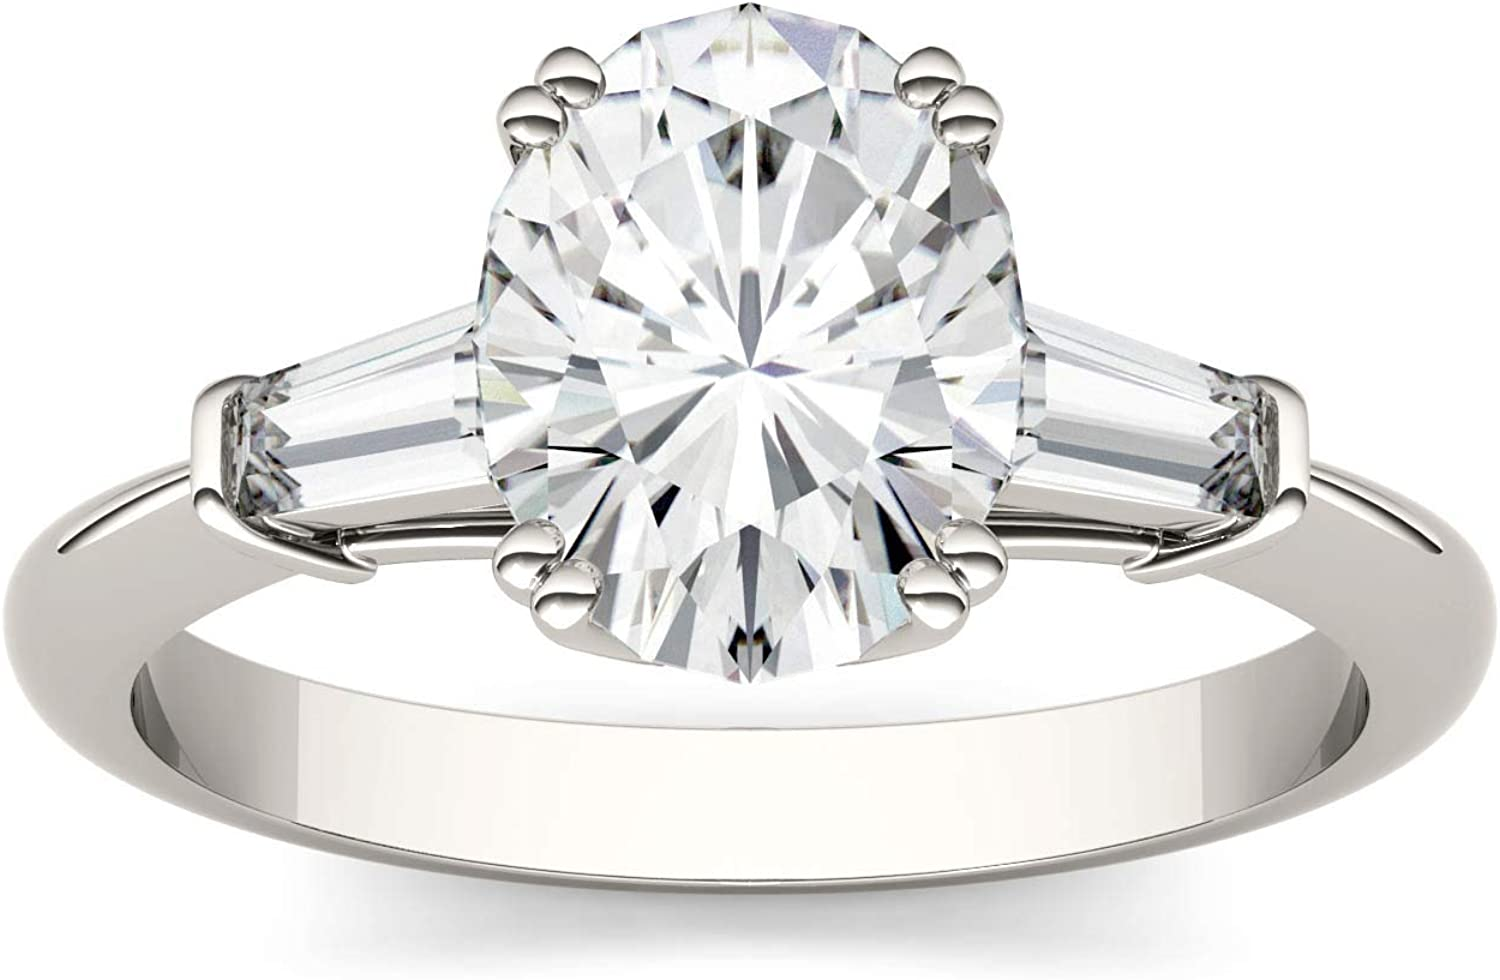 14K White Gold Moissanite by Charles & Colvard 9x7mm Oval Engagement Ring, 2.47cttw DEW